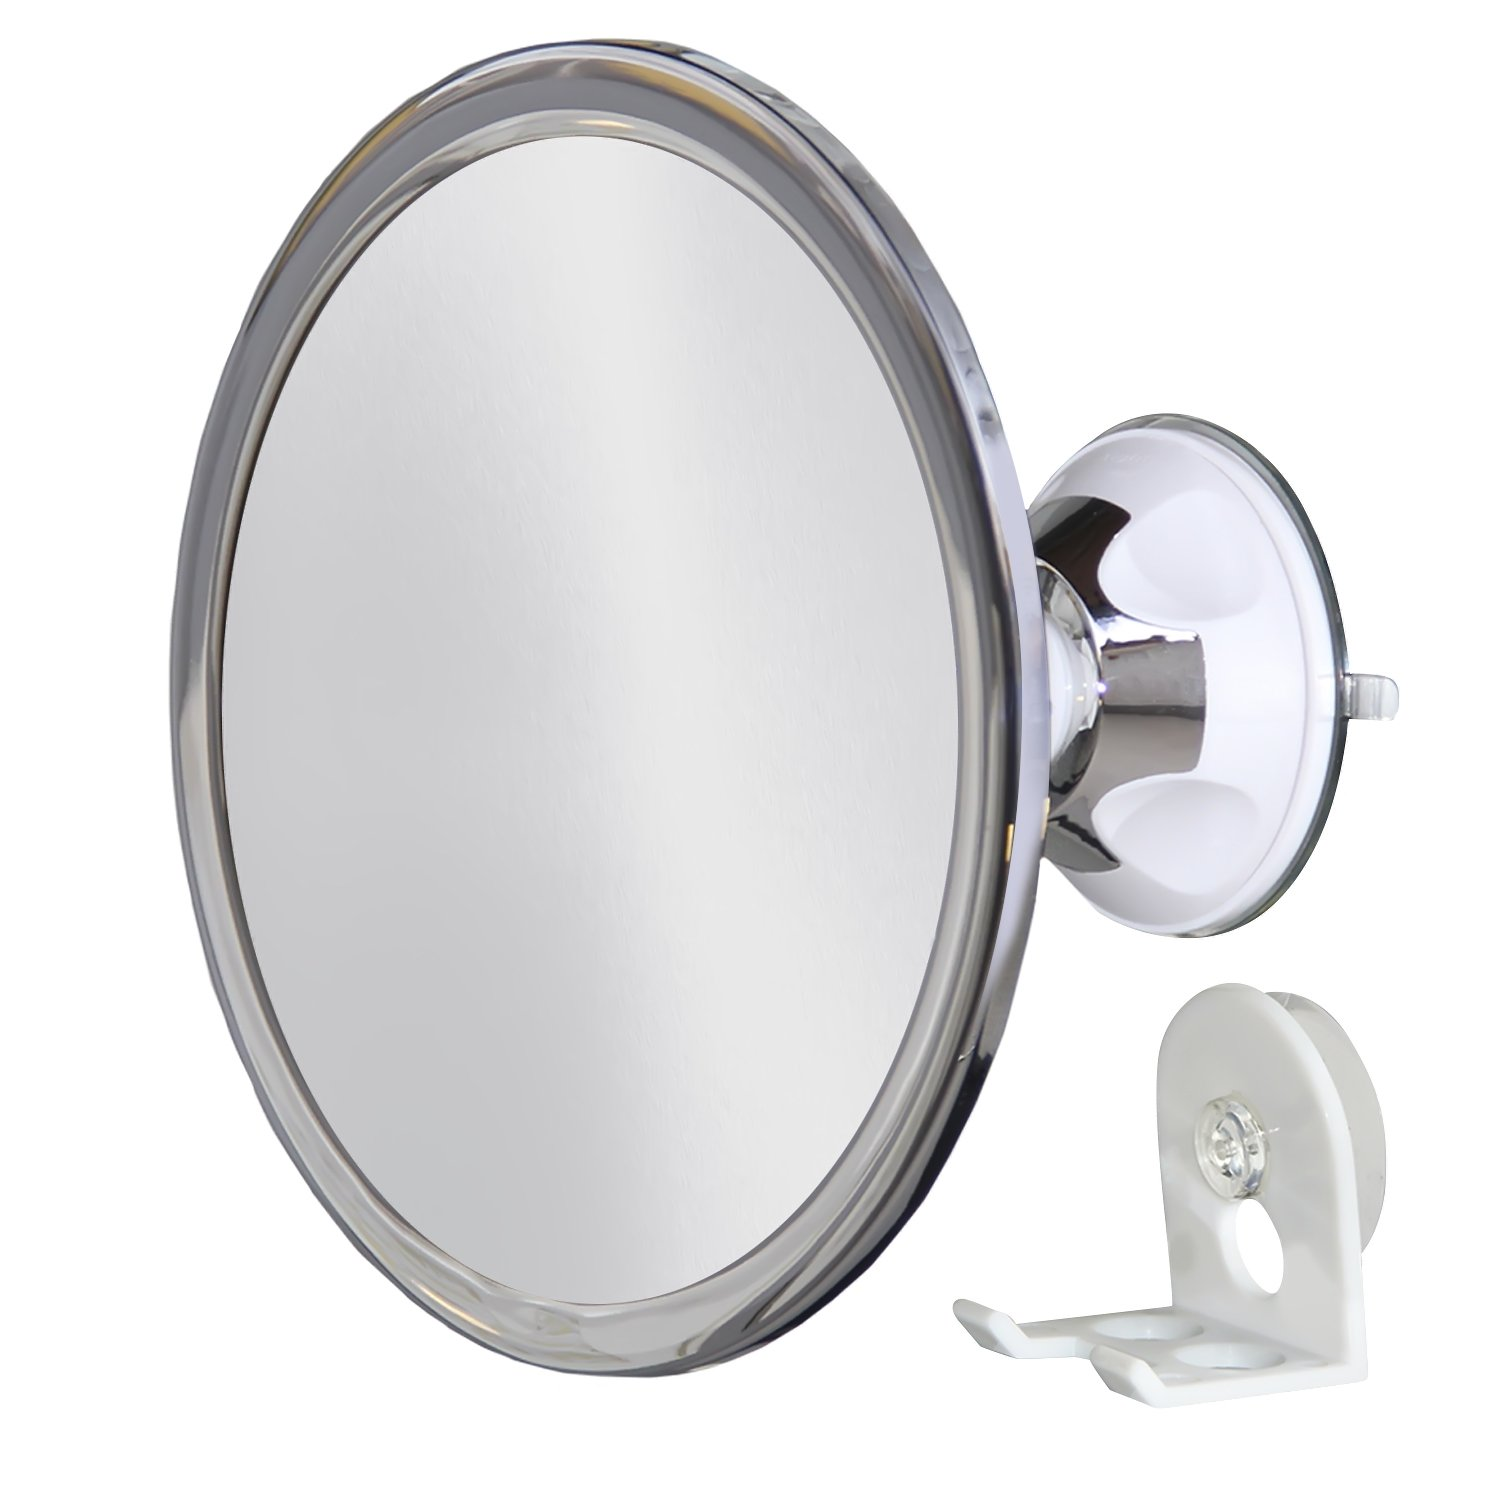 No Fog Shower Mirror with Rotating, Locking Suction; with Bonus Separate Razor Holder | Next Step in Shaving Mirror Technology | Adjustable Arm for Easy Positioning | Best Personal Mirror for Shaving You Will Ever Buy! Ideal Travel Mirror Upper West Collec